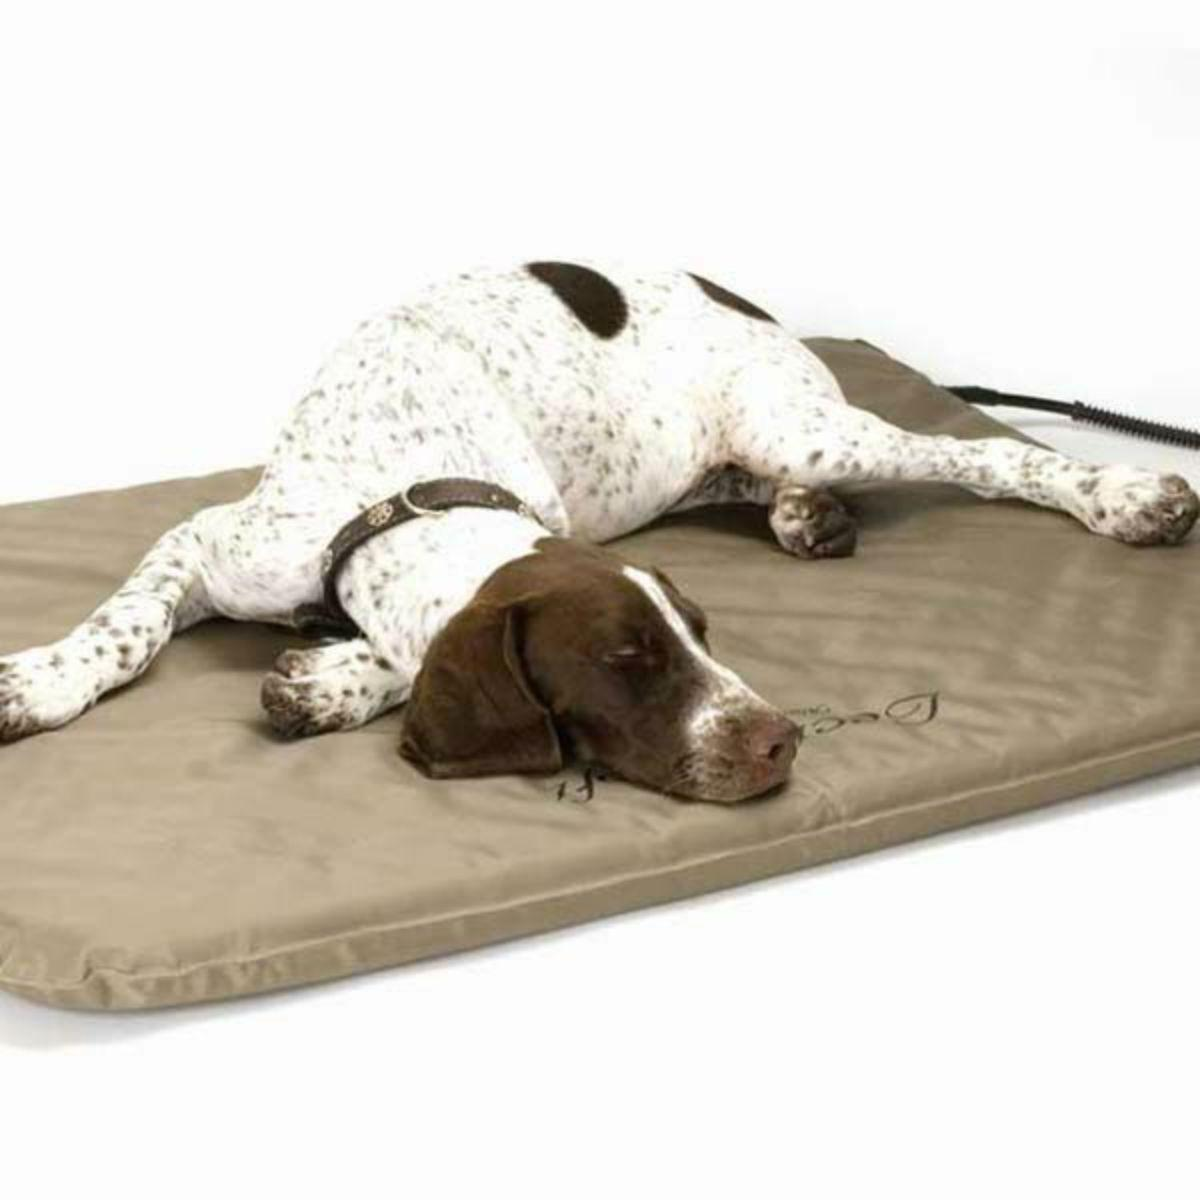 K&H Pet Products Original Lectro-Soft Outdoor Heated Dog Bed